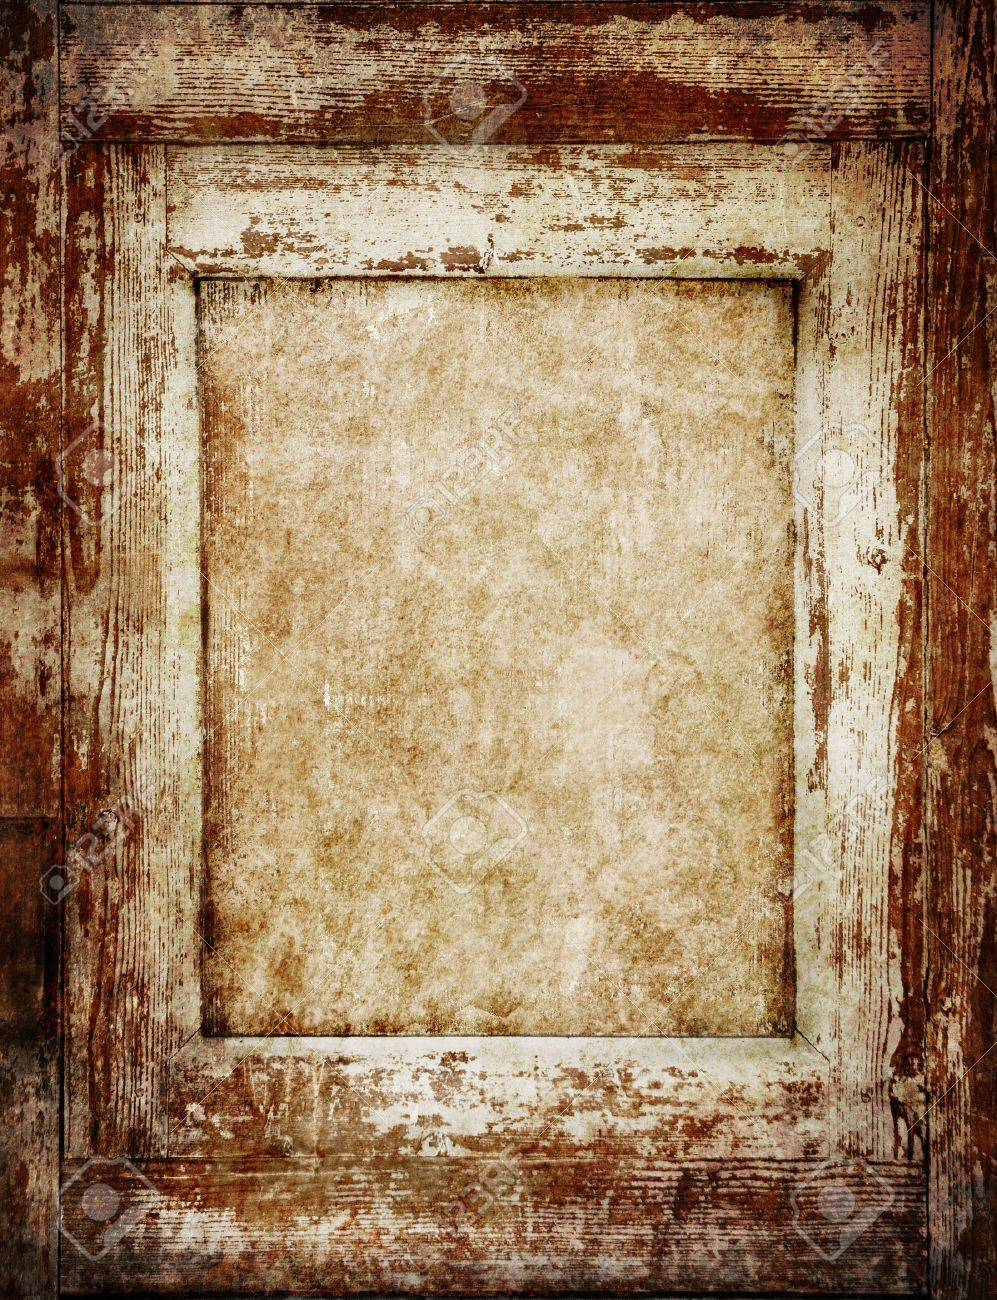 Stock Photo   Vintage Wooden Frame With Empty Space Inside